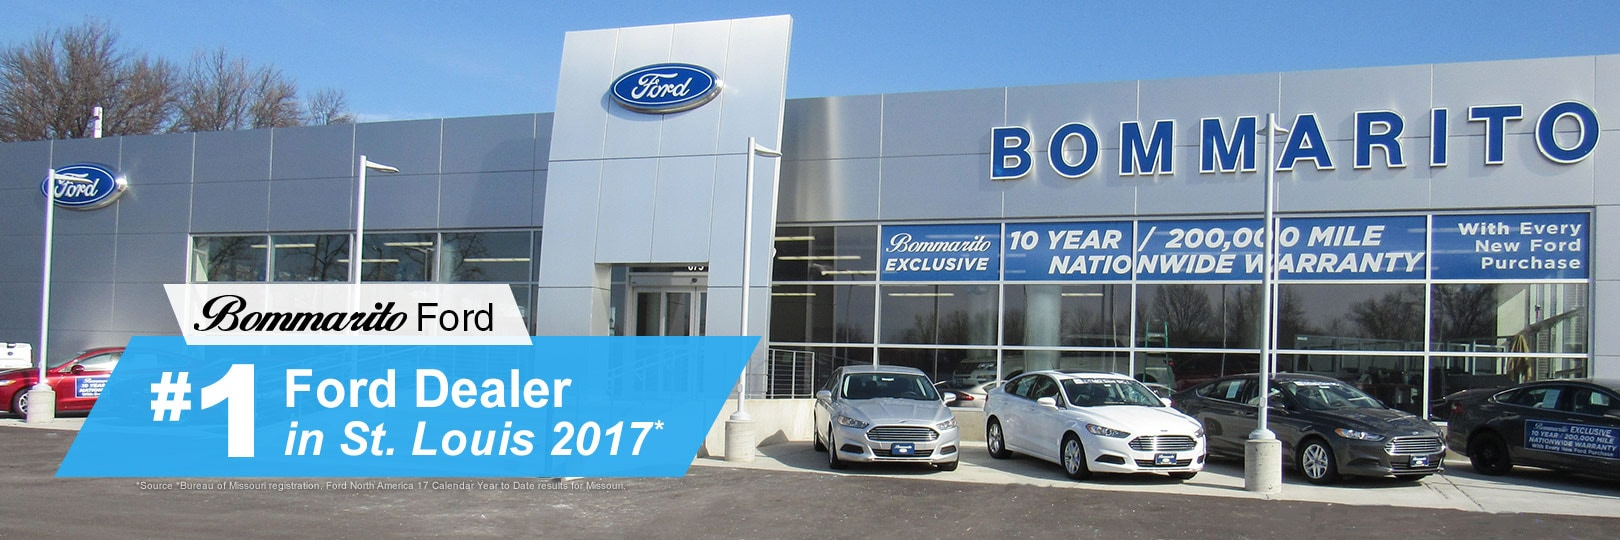 Bommarito Ford Hazelwood MO New Used Ford Dealership - Ford dealers st louis